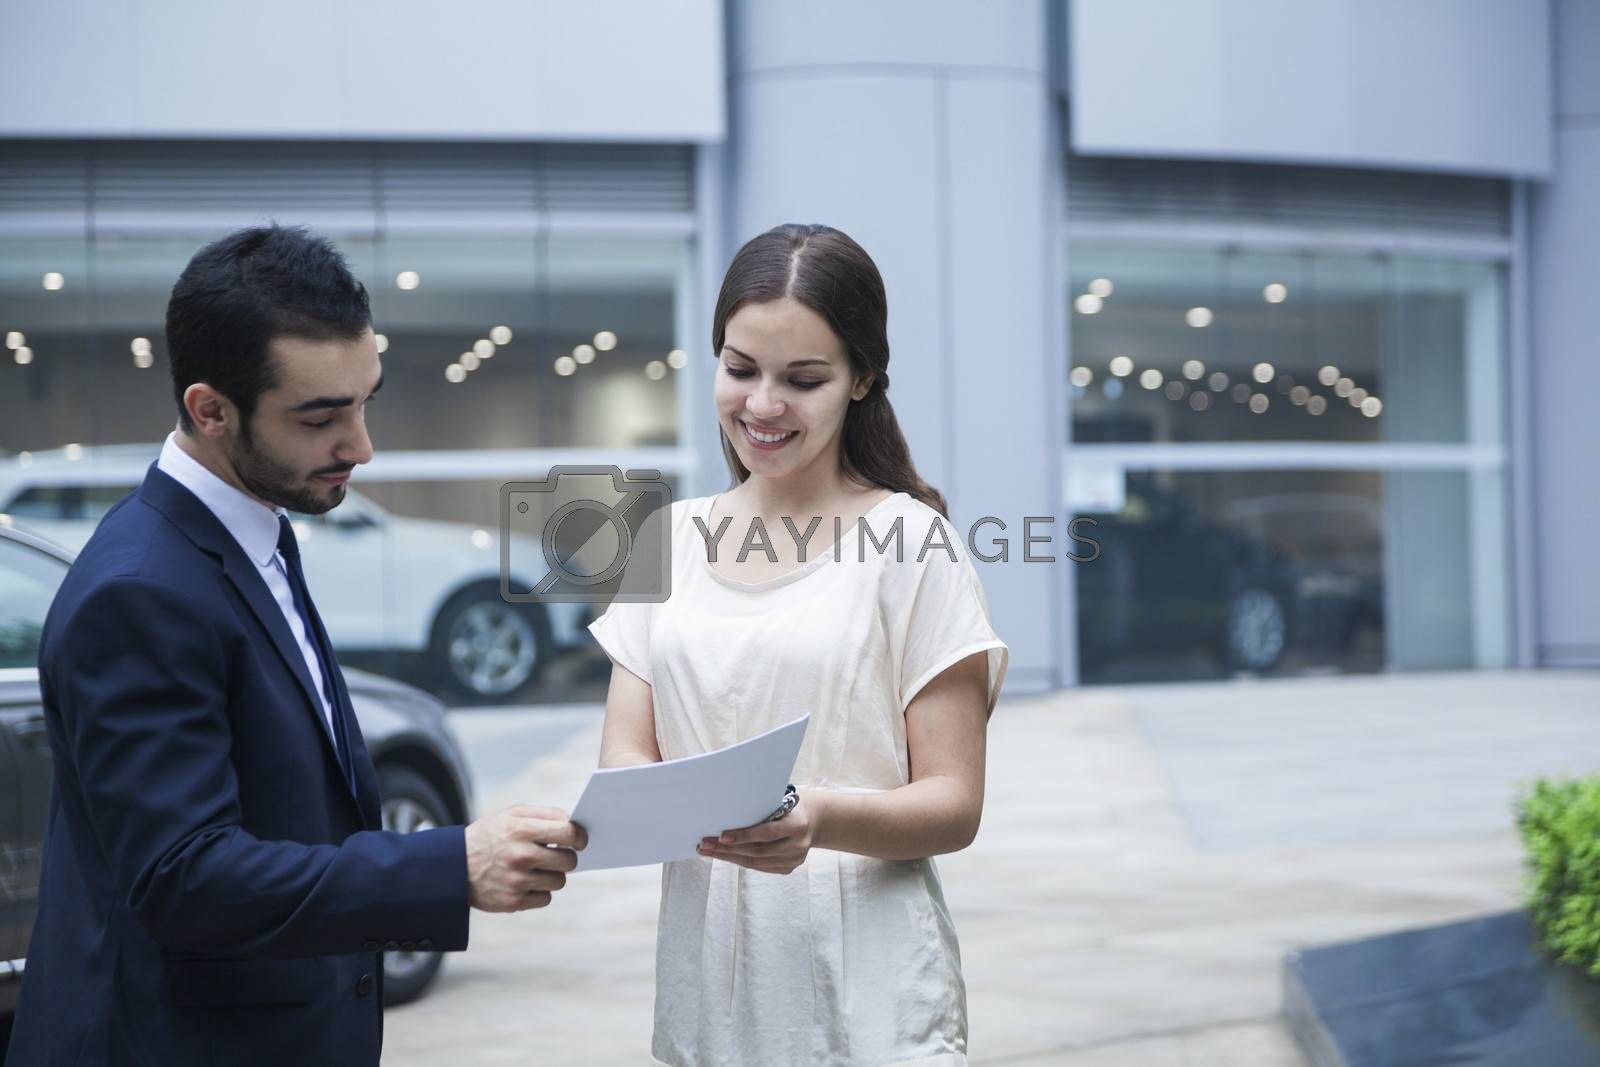 Car salesman and young woman looking over the paperwork at a car dealership